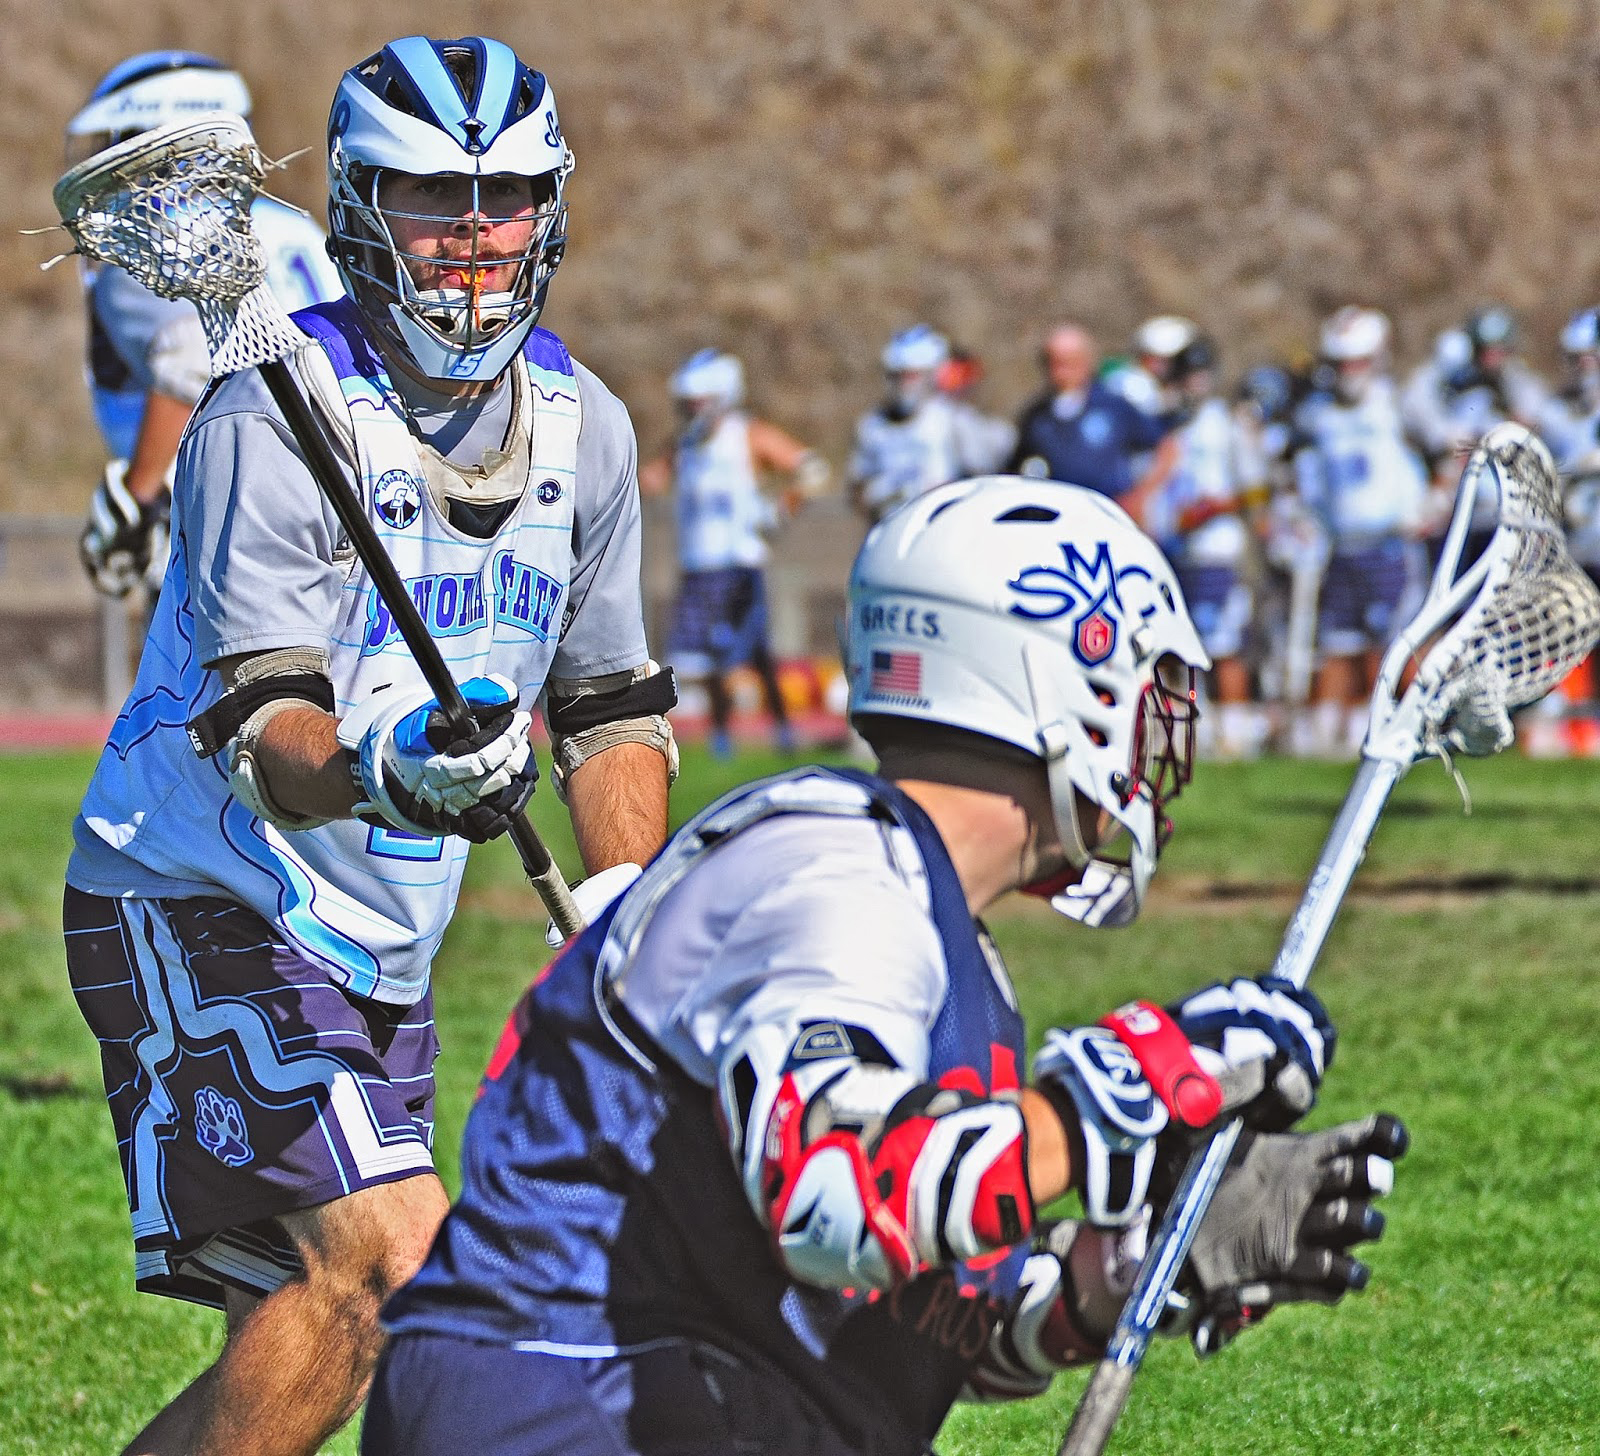 sonoma.edu   The first men's lacrosse game of the season is scheduled for Oct. 12.